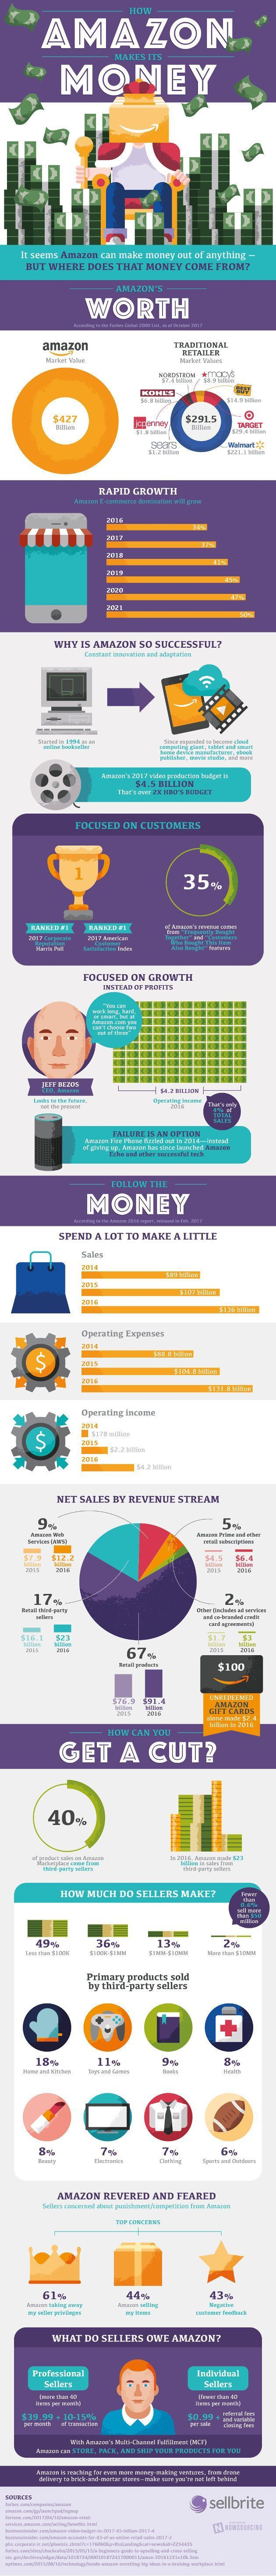 Most of us use Amazon as consumers, but there might be a place for the website in your product sales strategy as well. Some 40% of product sales on Amazon... #InfographicsMoney #InfographicsProduct